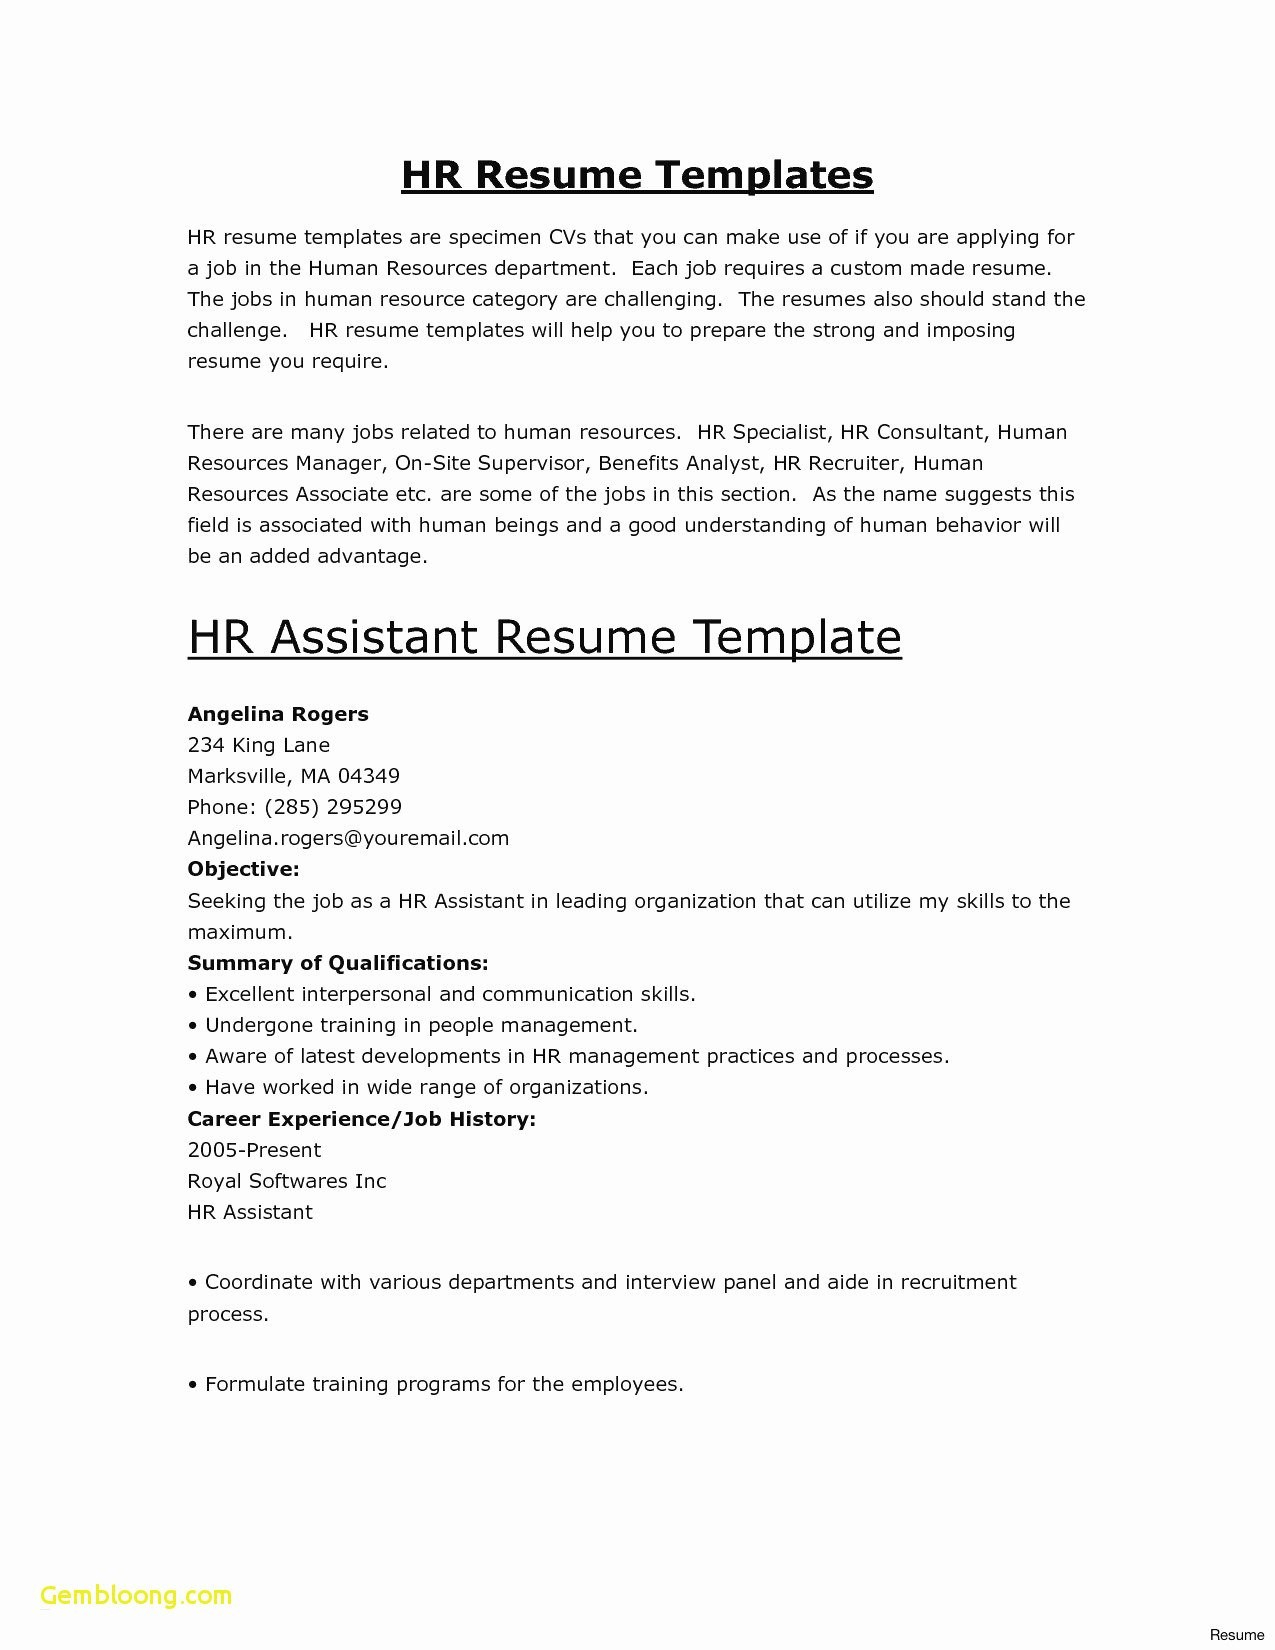 beginner actor resume template Collection-Actors Resume Template Beautiful 26 Resume Templates to Download Bcbostonians1986 Actors Resume Template Unique Child 7-r